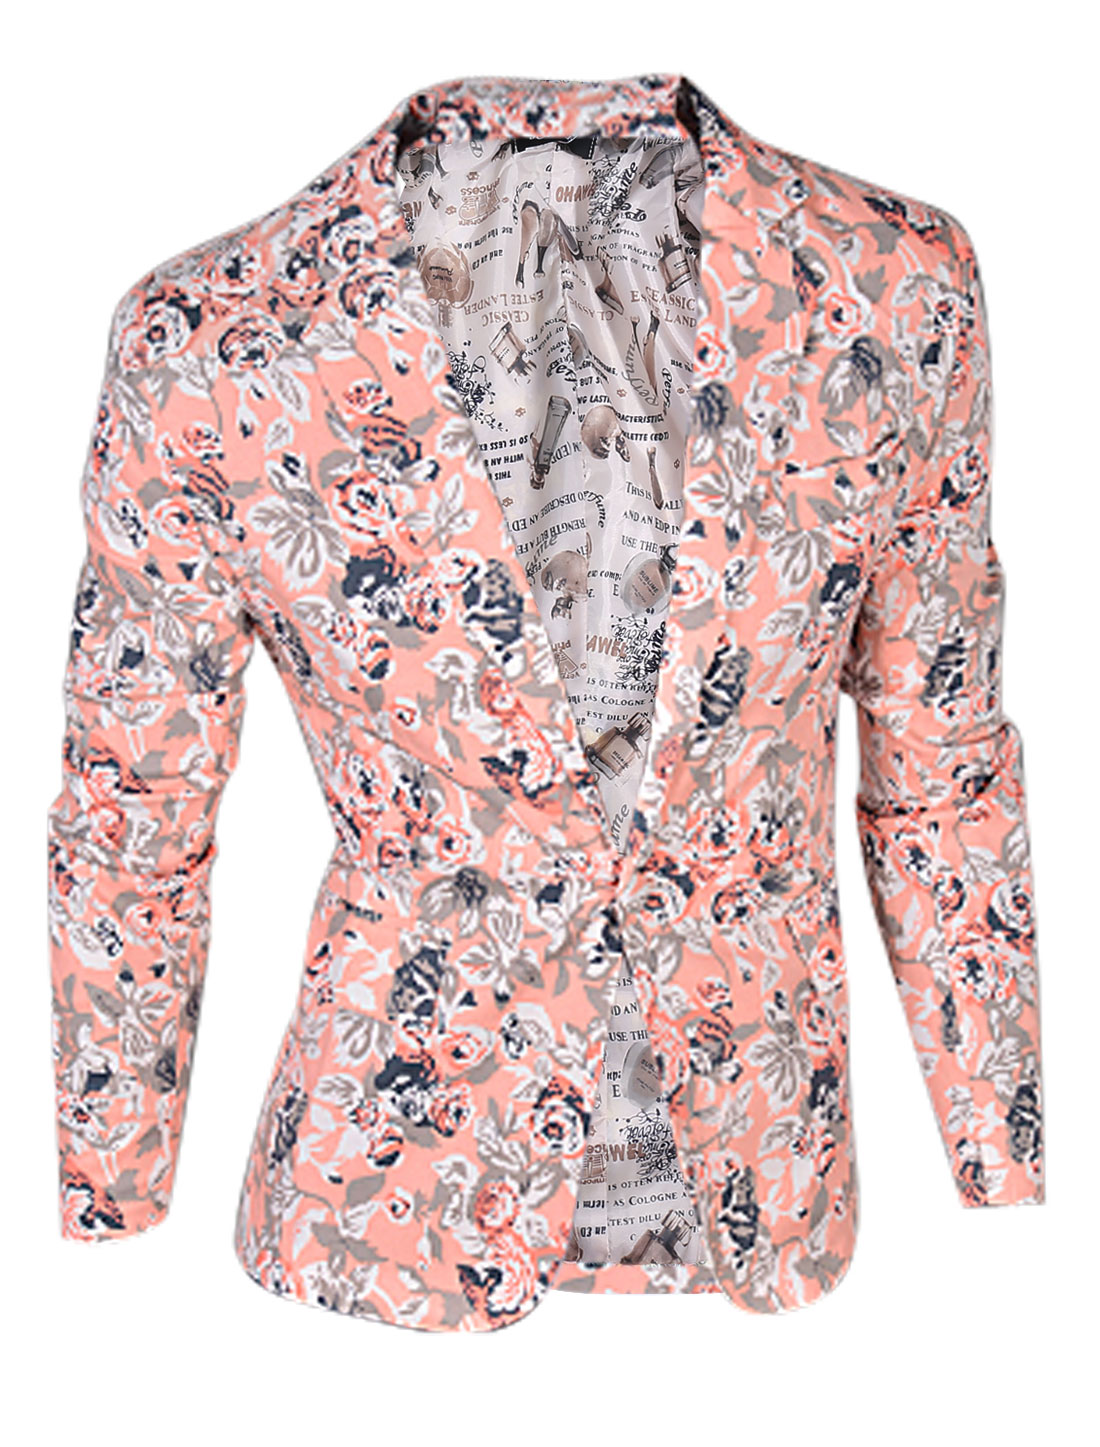 Man Light Coral Light Gray Floral Prints One Button Clsoure Padded Shoulder Blazer Jacket M